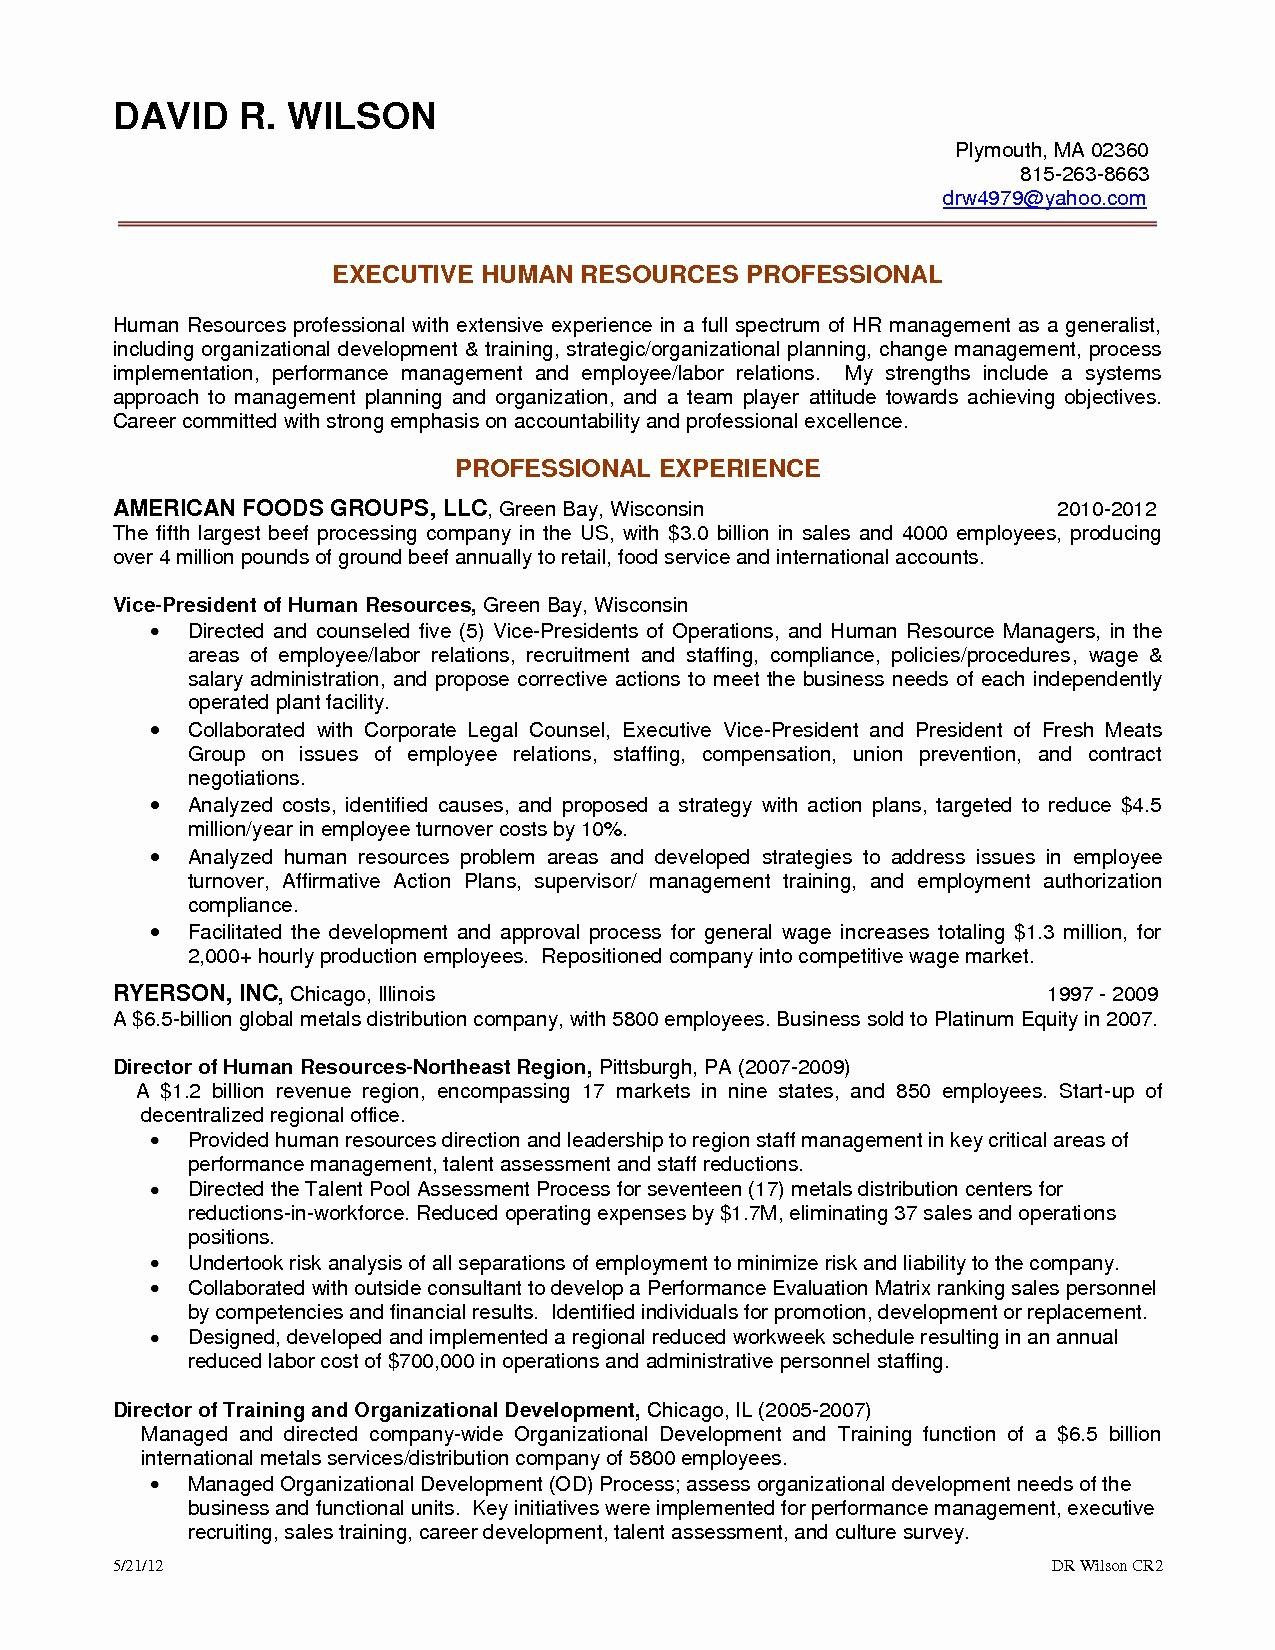 Warehouse Worker Resume - Resume Template for Warehouse Worker Objective for Warehouse Worker